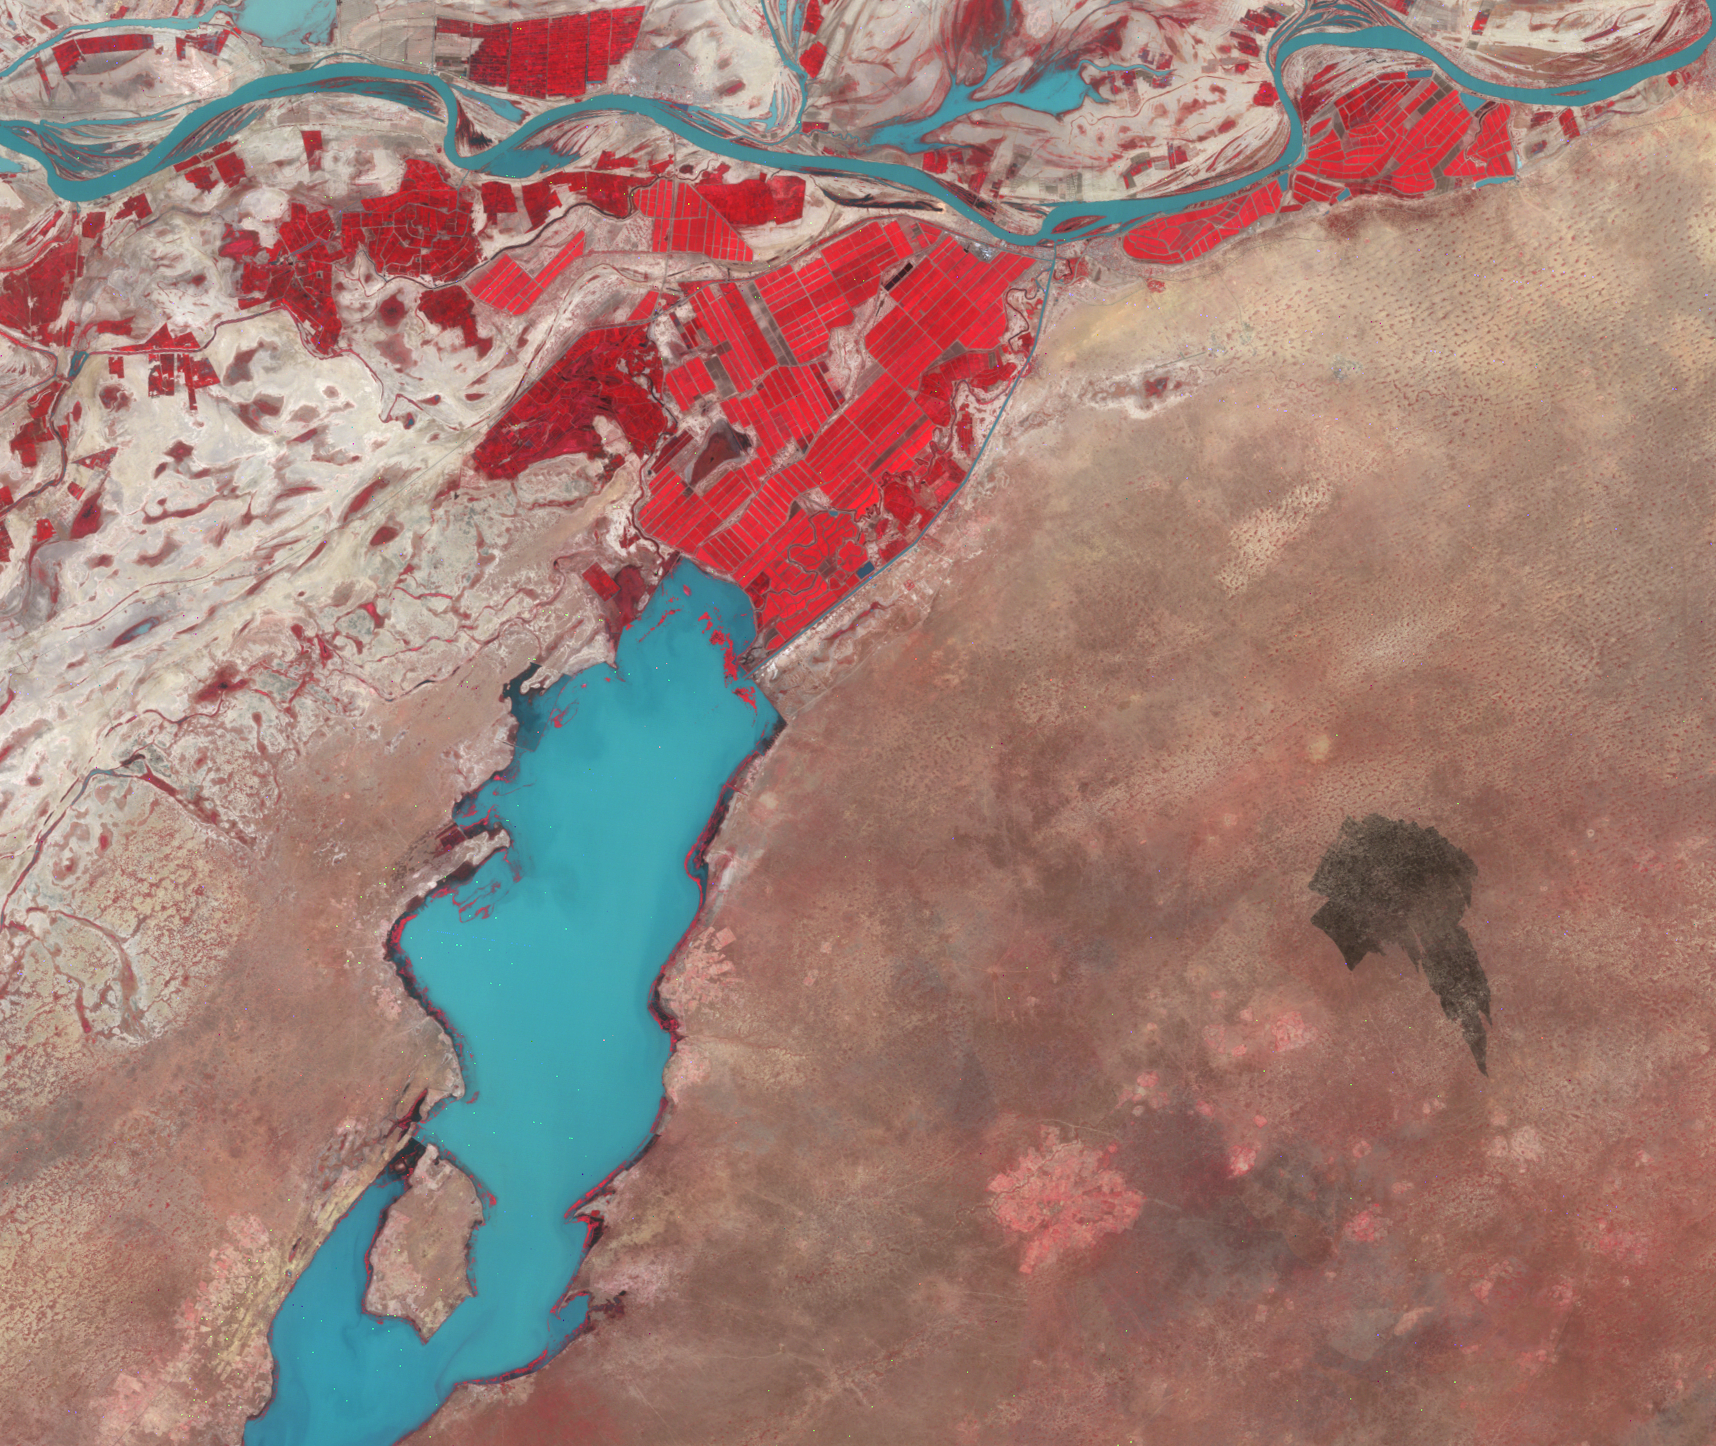 Oct. 15, 1989, Landsat 5 (path/row 205/49) — Irrigated fields near Rosso, Mauritania